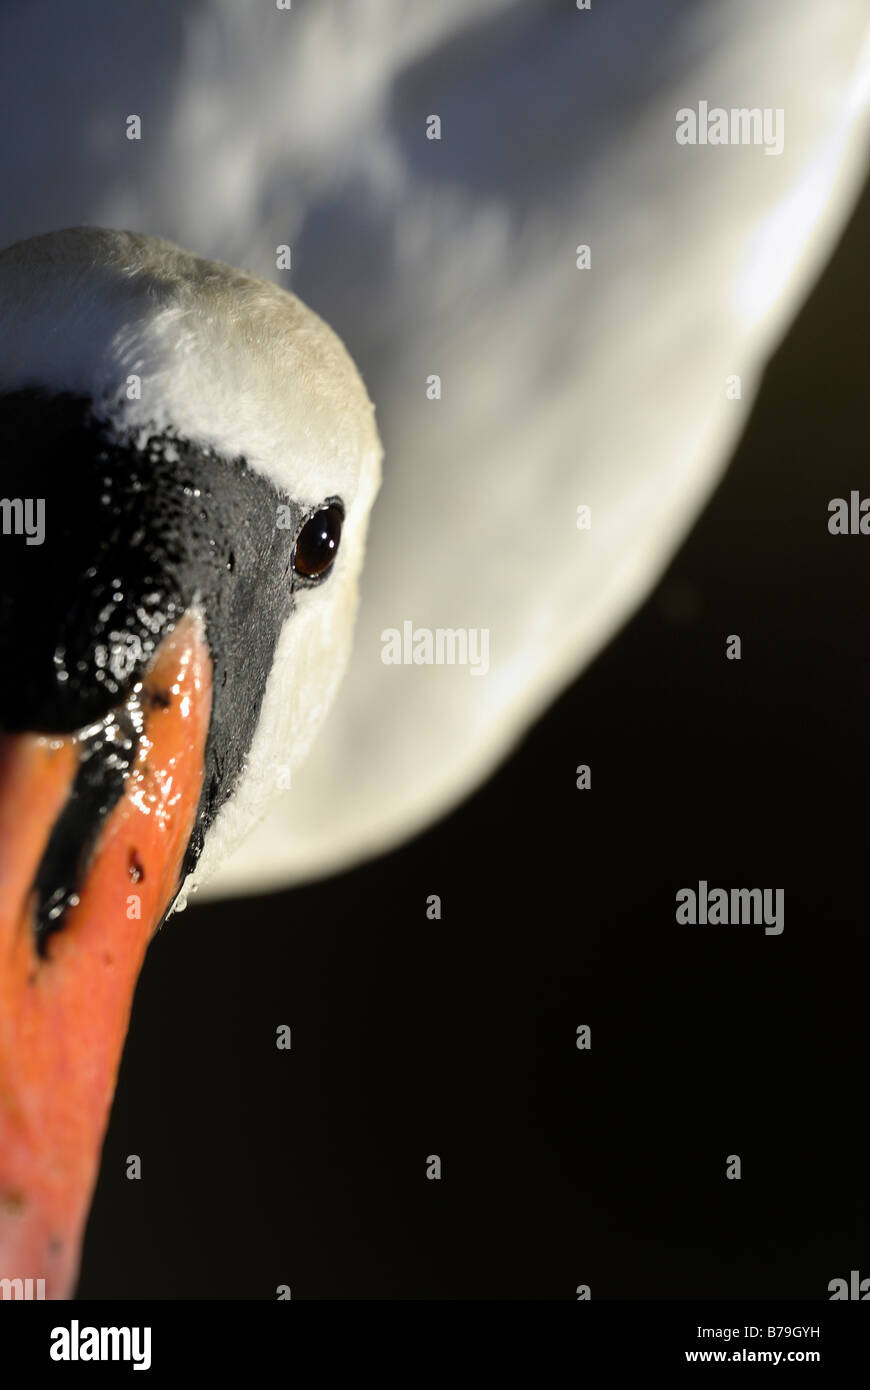 Unusual angle view of a Swan`s eye and bill with large areas de-focused for effect - Stock Image